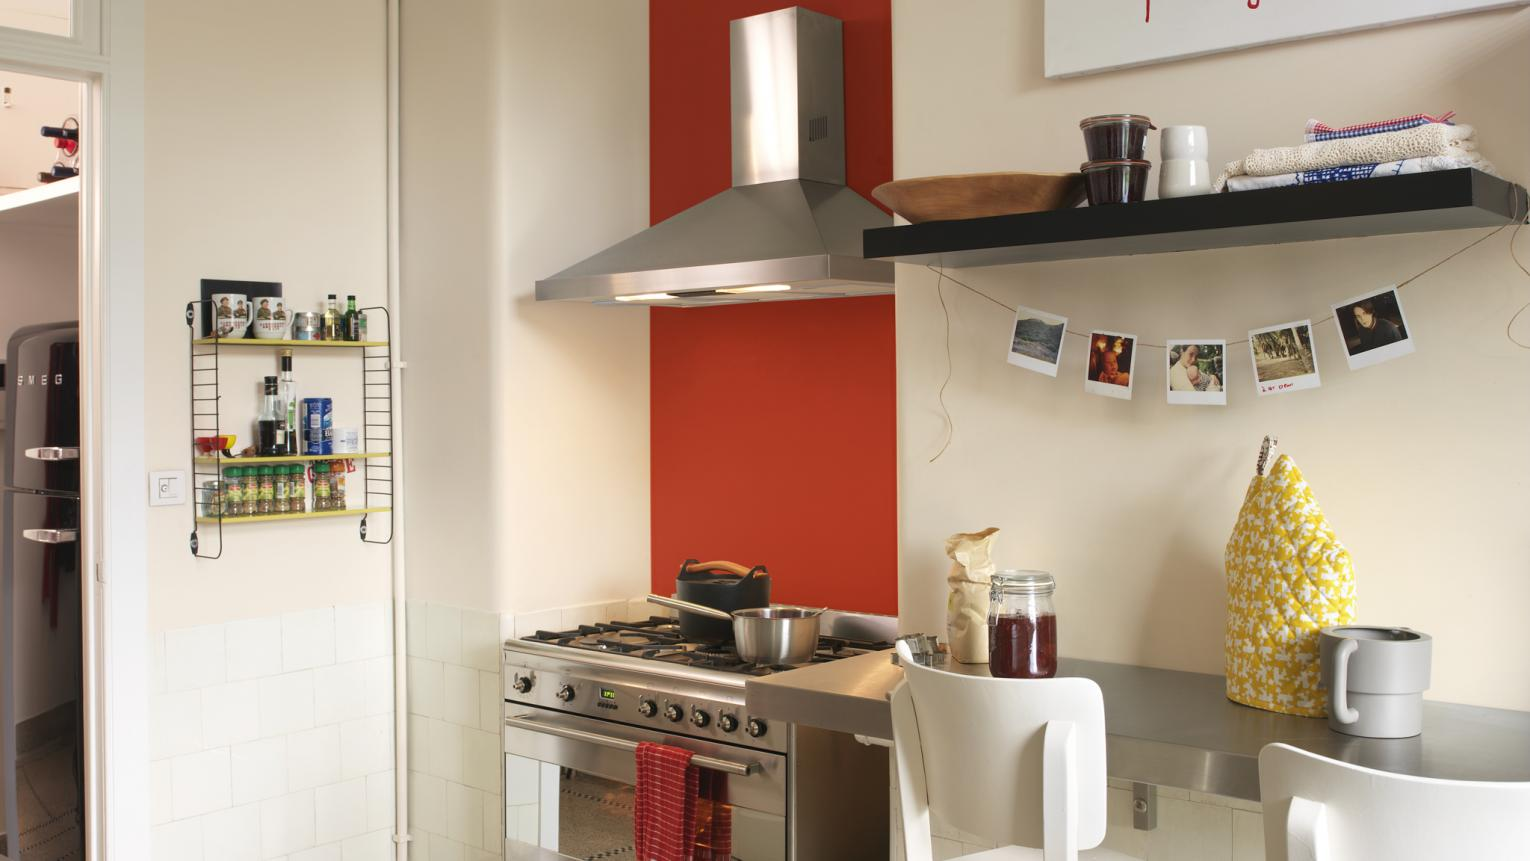 Use a bright accent colour to add energy to a plain kitchen.